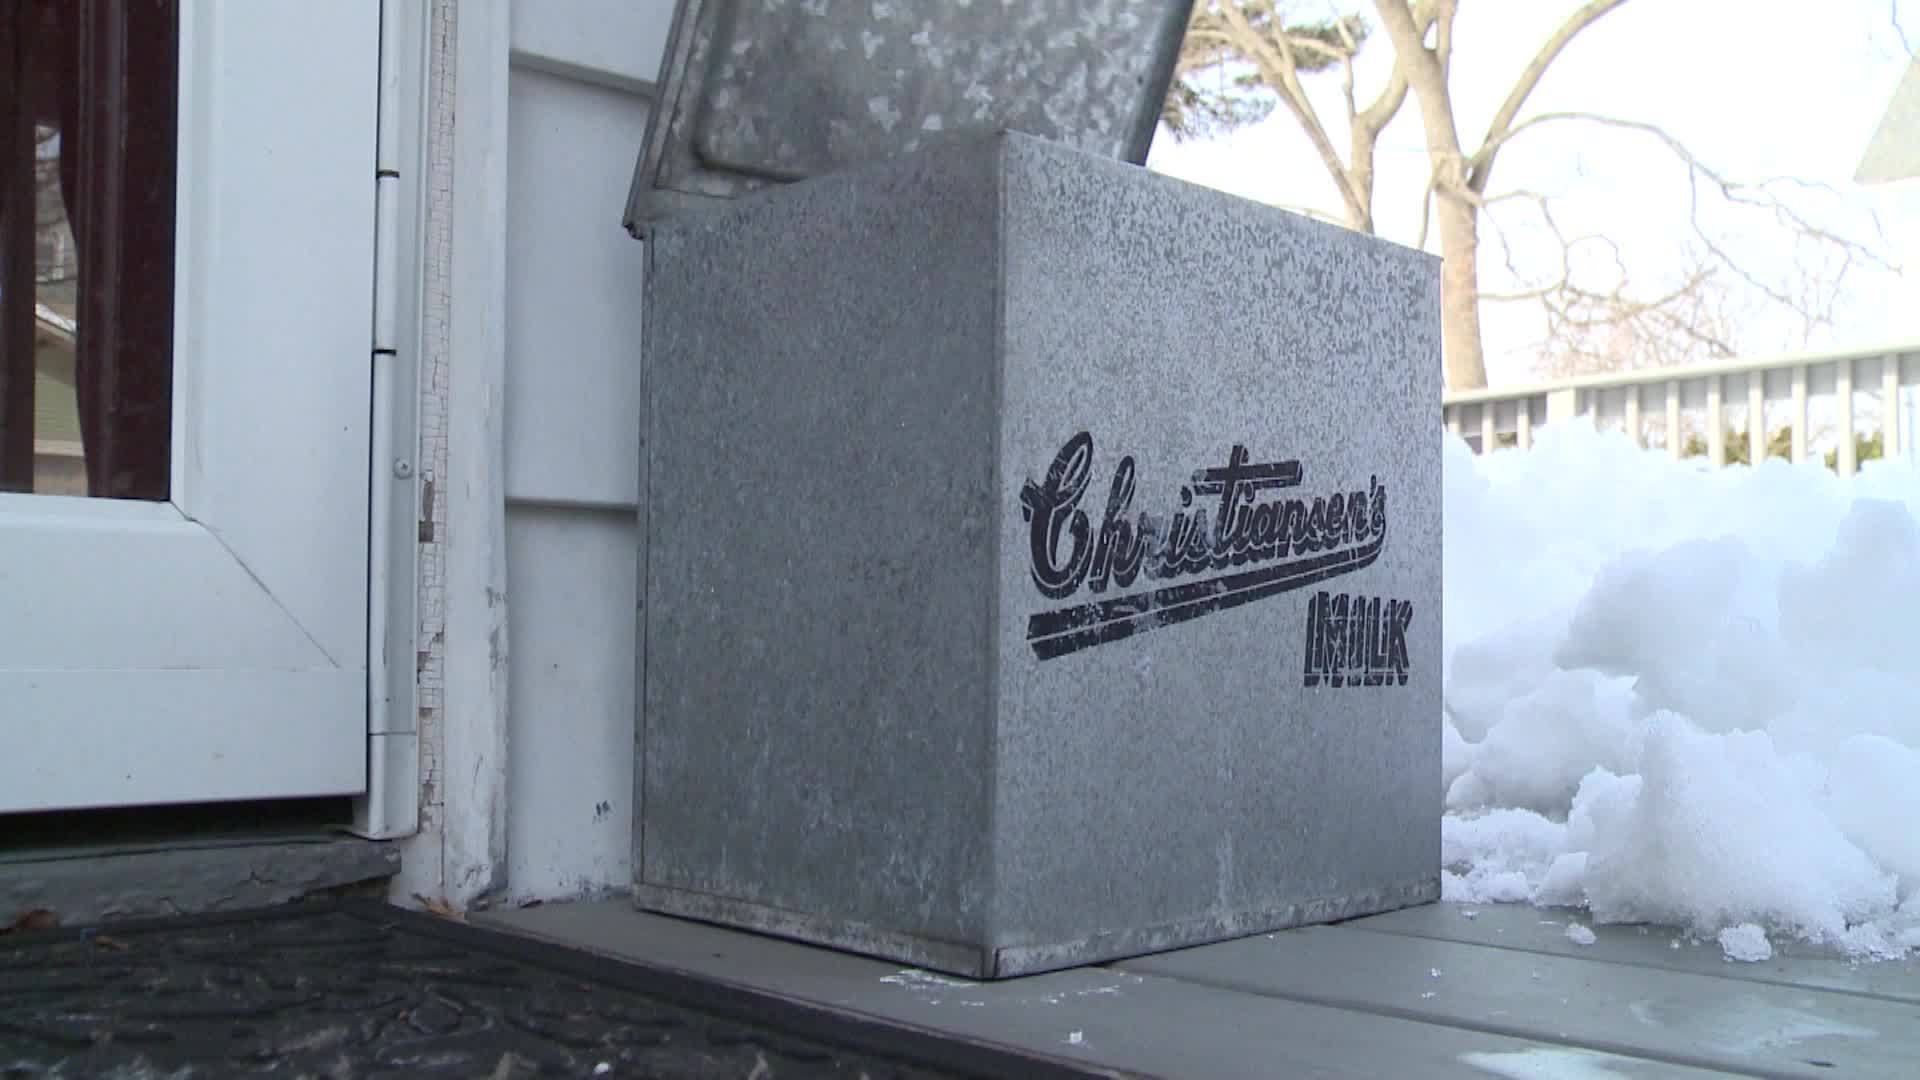 Christiansen's Dairy closing after nearly a century